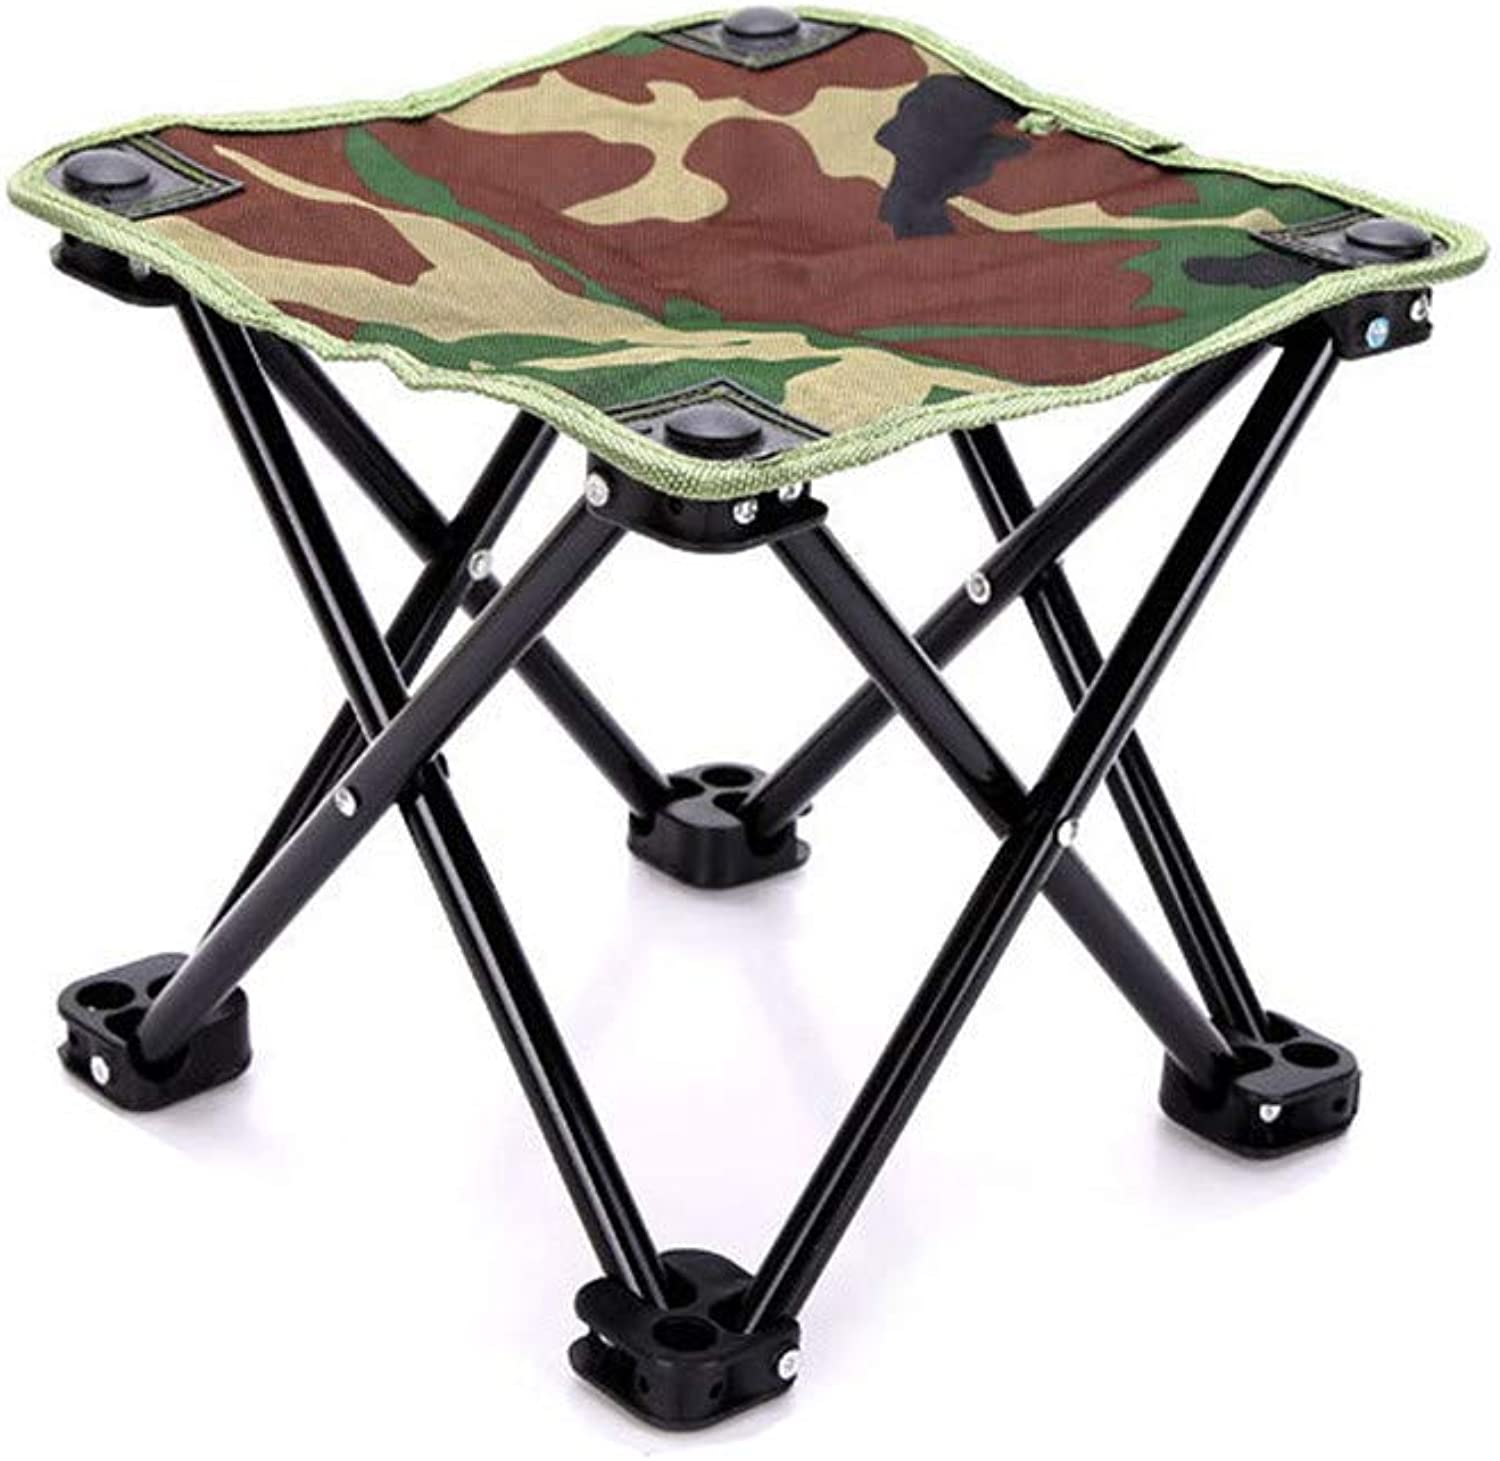 Portable Mini Folding StoolLightweight Frame Stool Chair Outdoor Camping Furniture Fishing Hiking Mountaineering + Flat Feet Stability and Carrying Bag (Maucy)